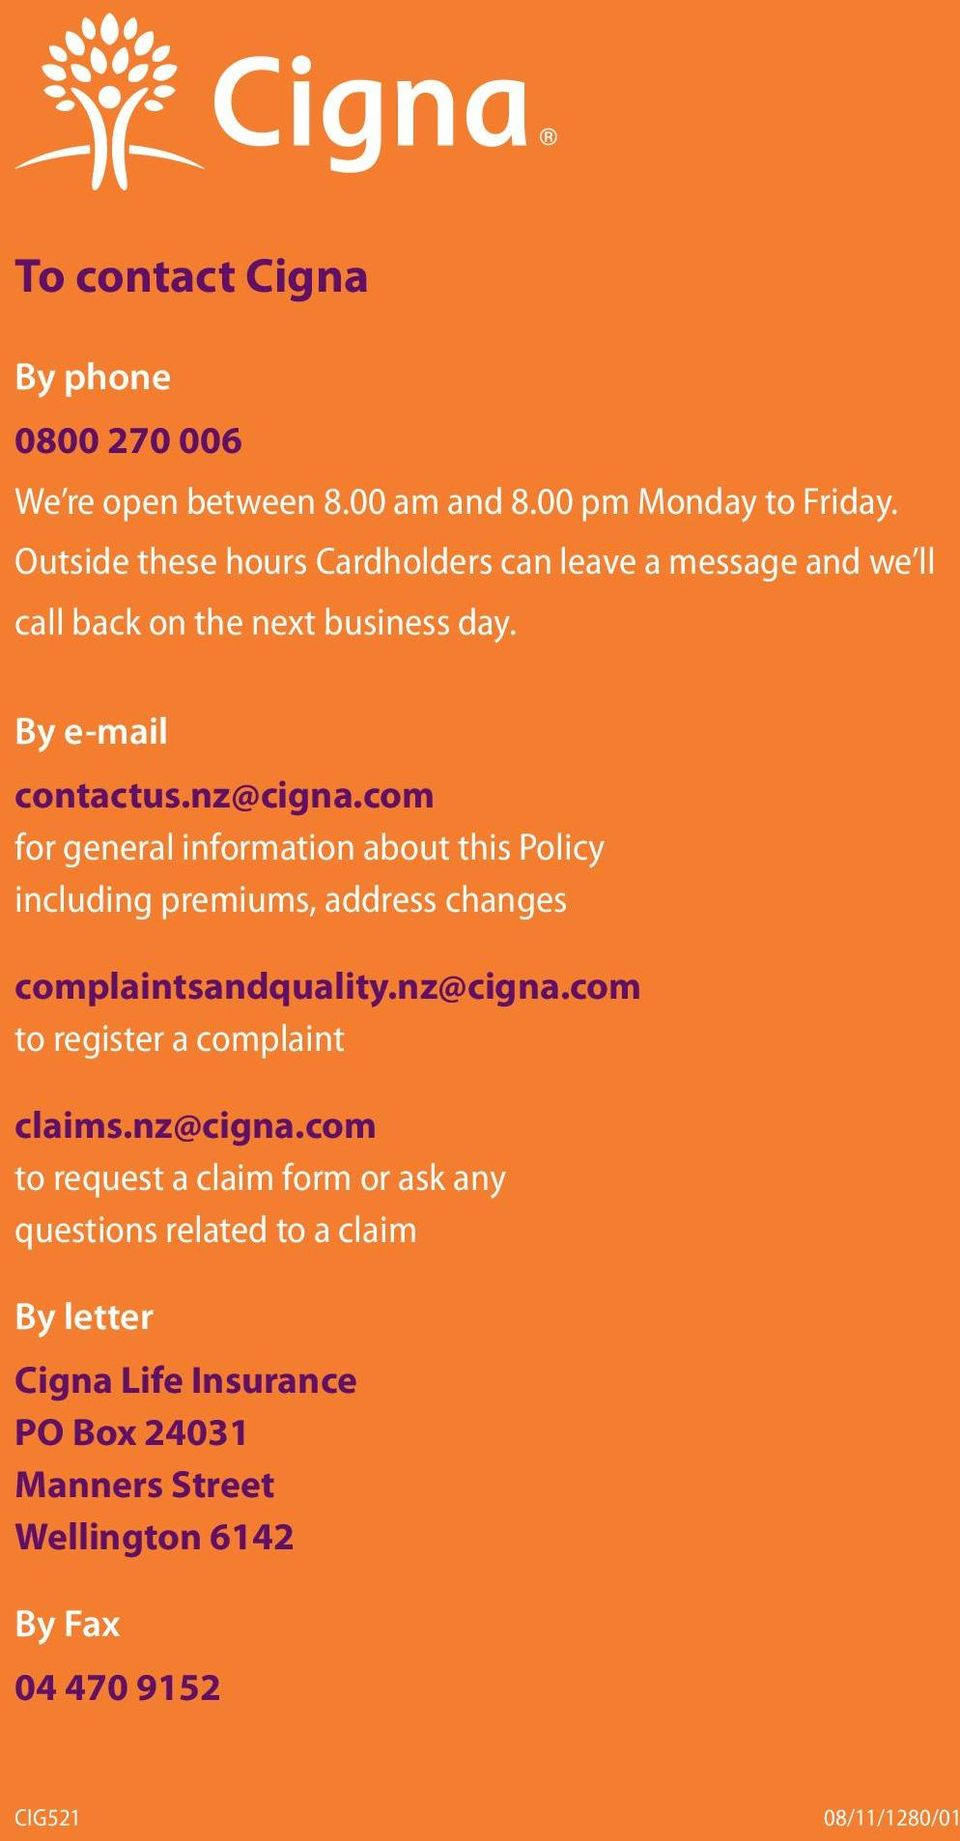 com for general information about this Policy including premiums, address changes complaintsandquality.nz@cigna.